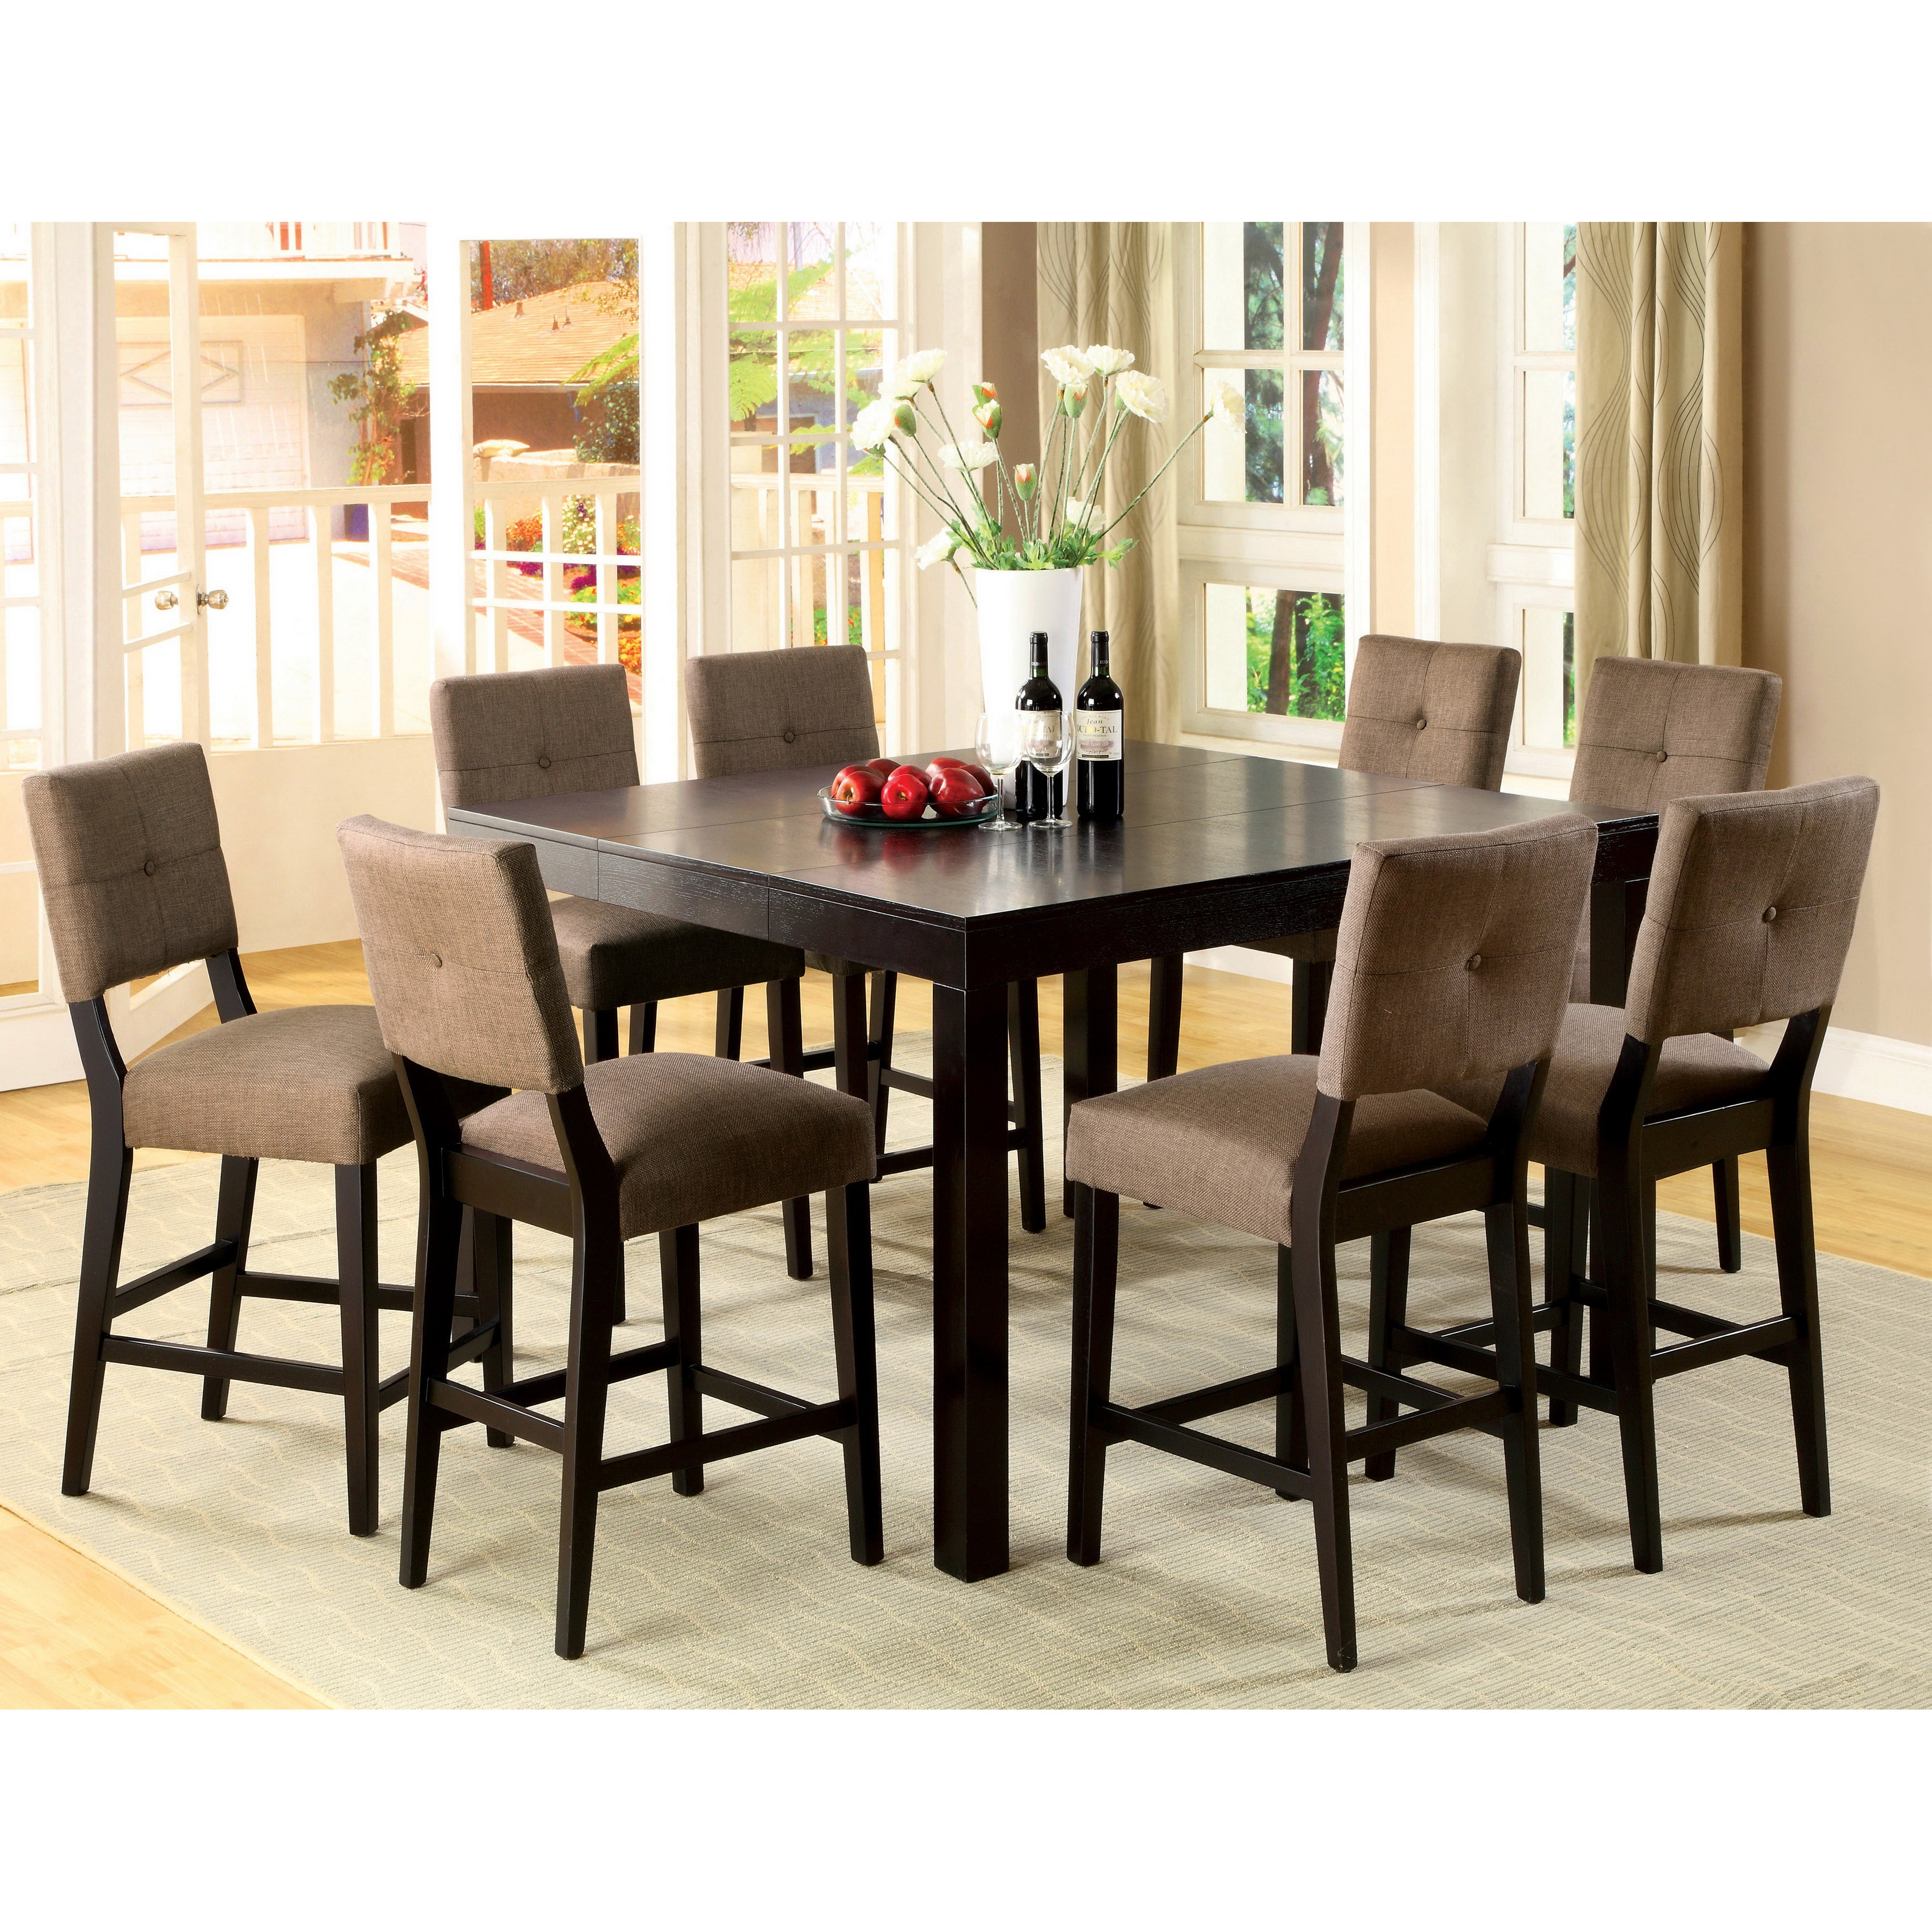 Furniture Of America Catherine Espresso Counter Height Dining Set Regarding Newest Wallflower 3 Piece Dining Sets (Image 2 of 20)